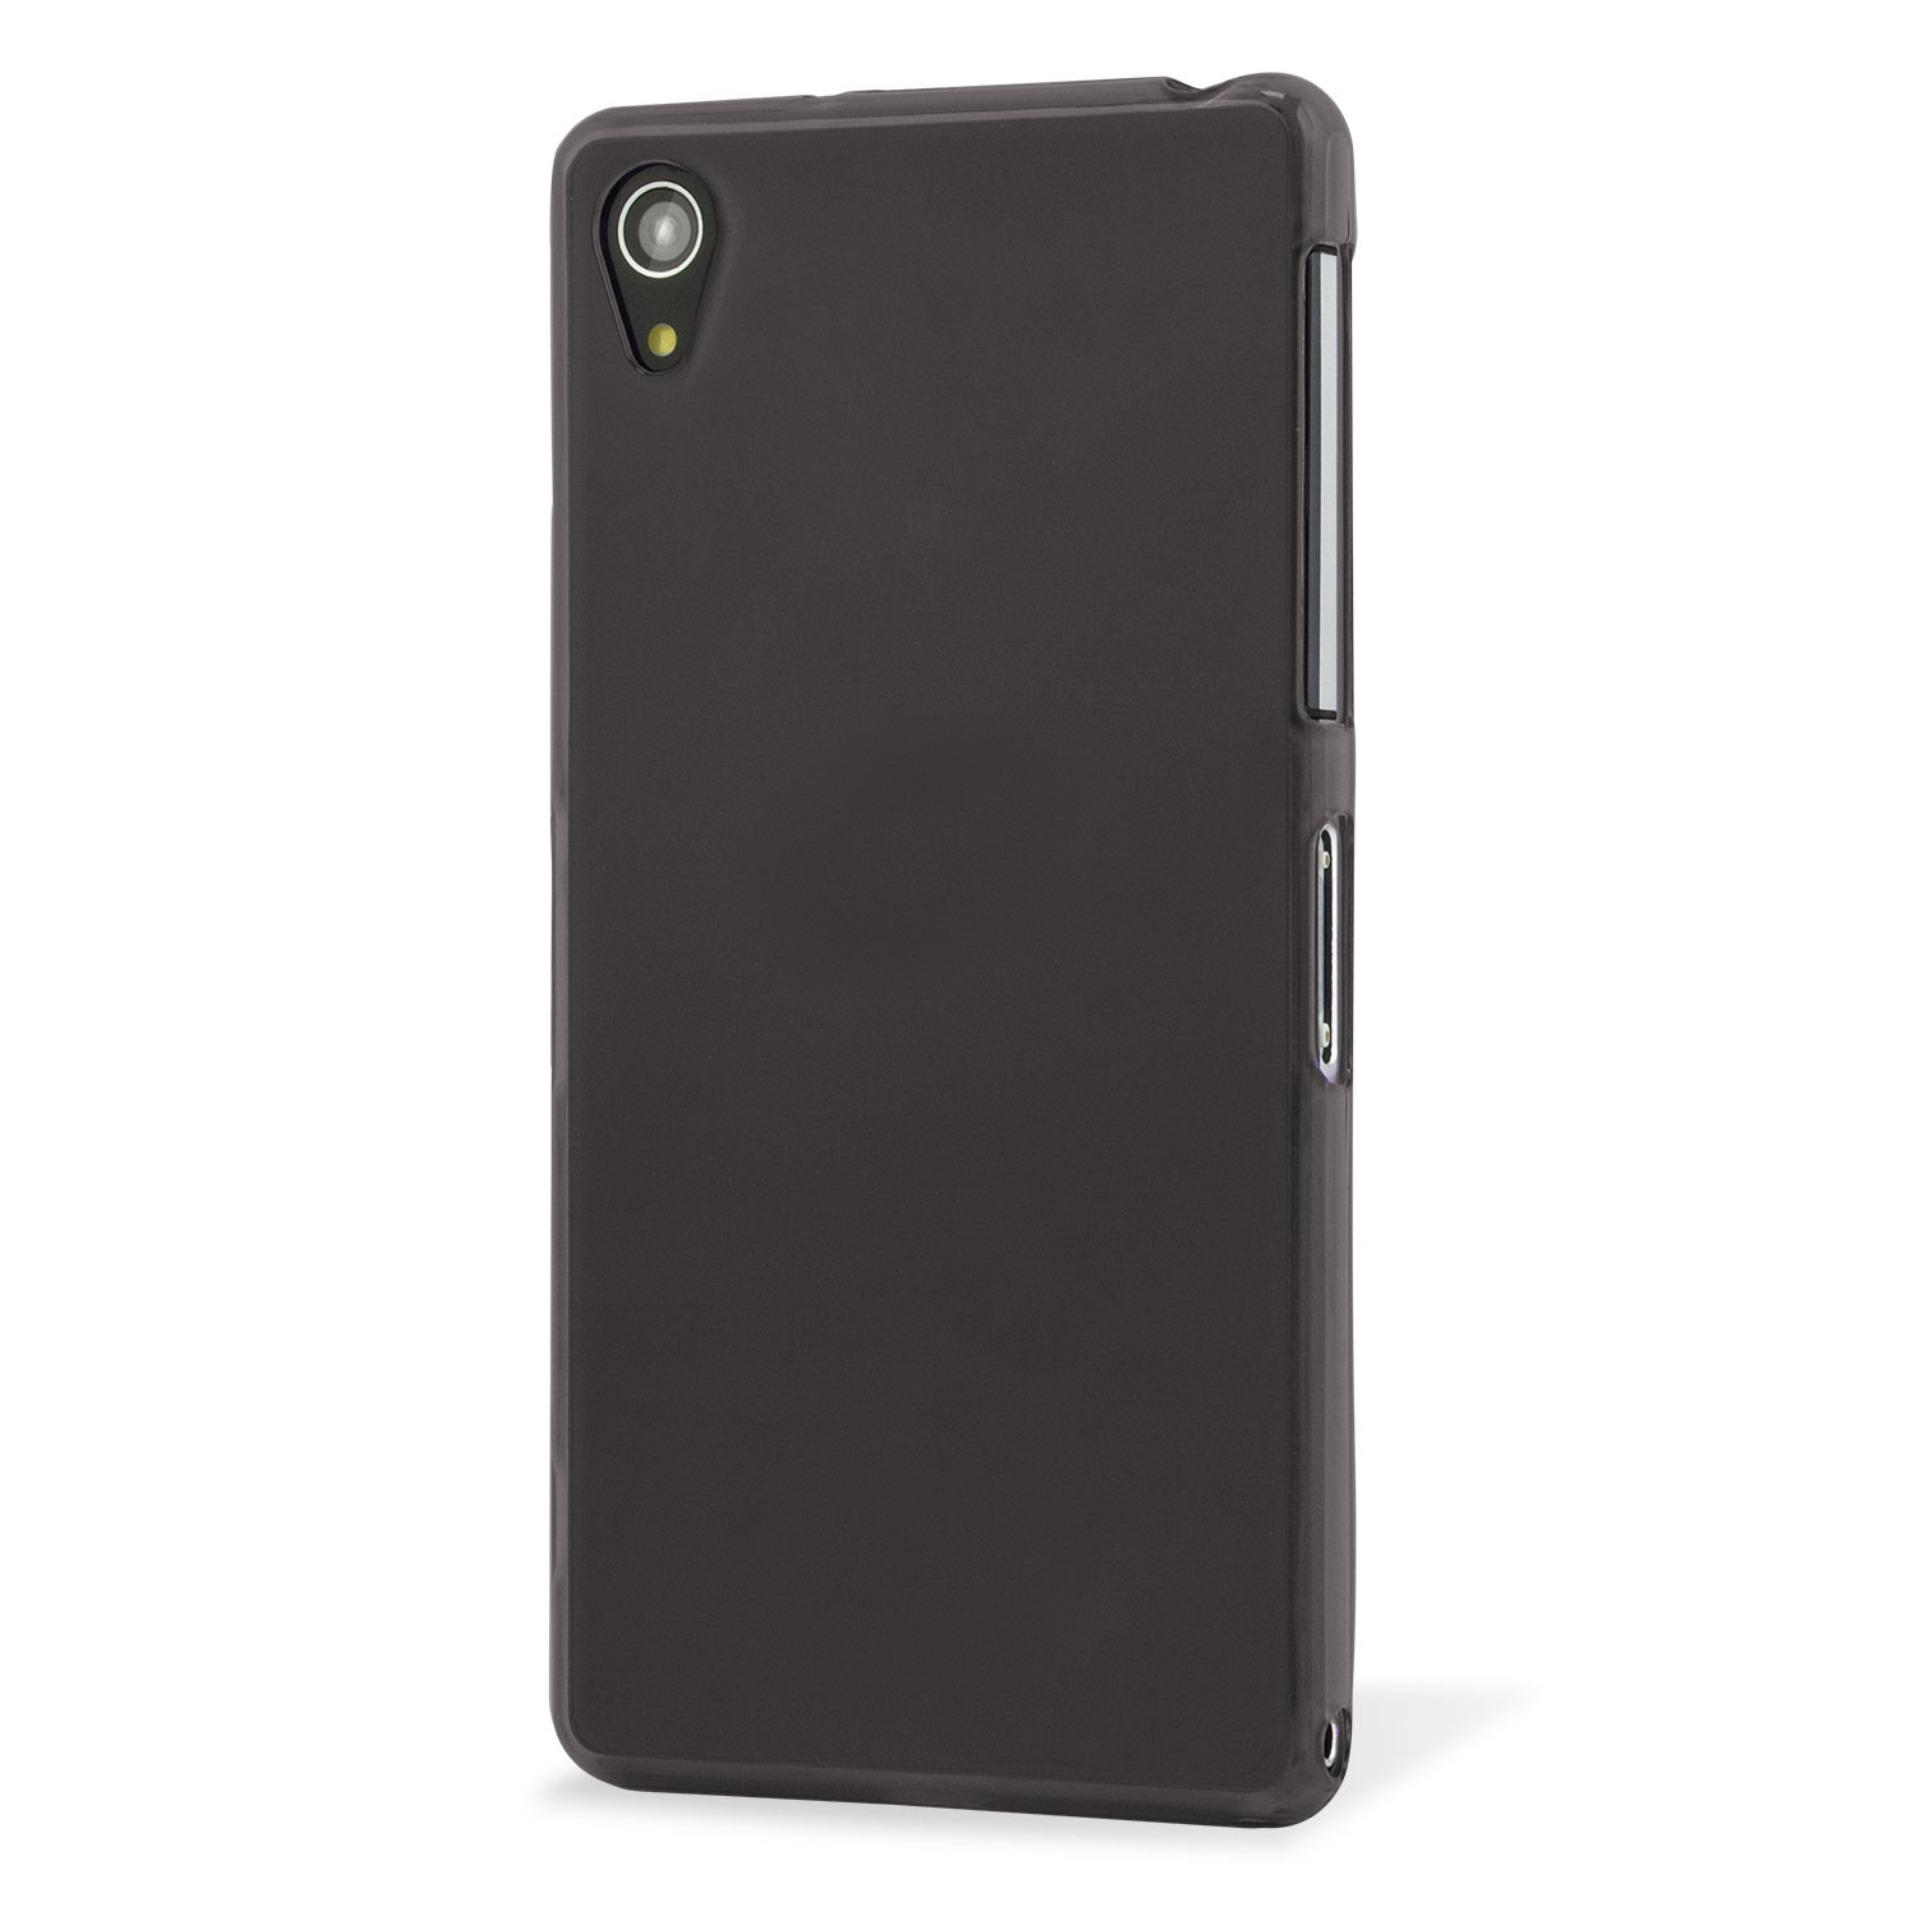 Case Slim Black doff Matte Anti minyak For Sony Xperia Z2 - Black Doff